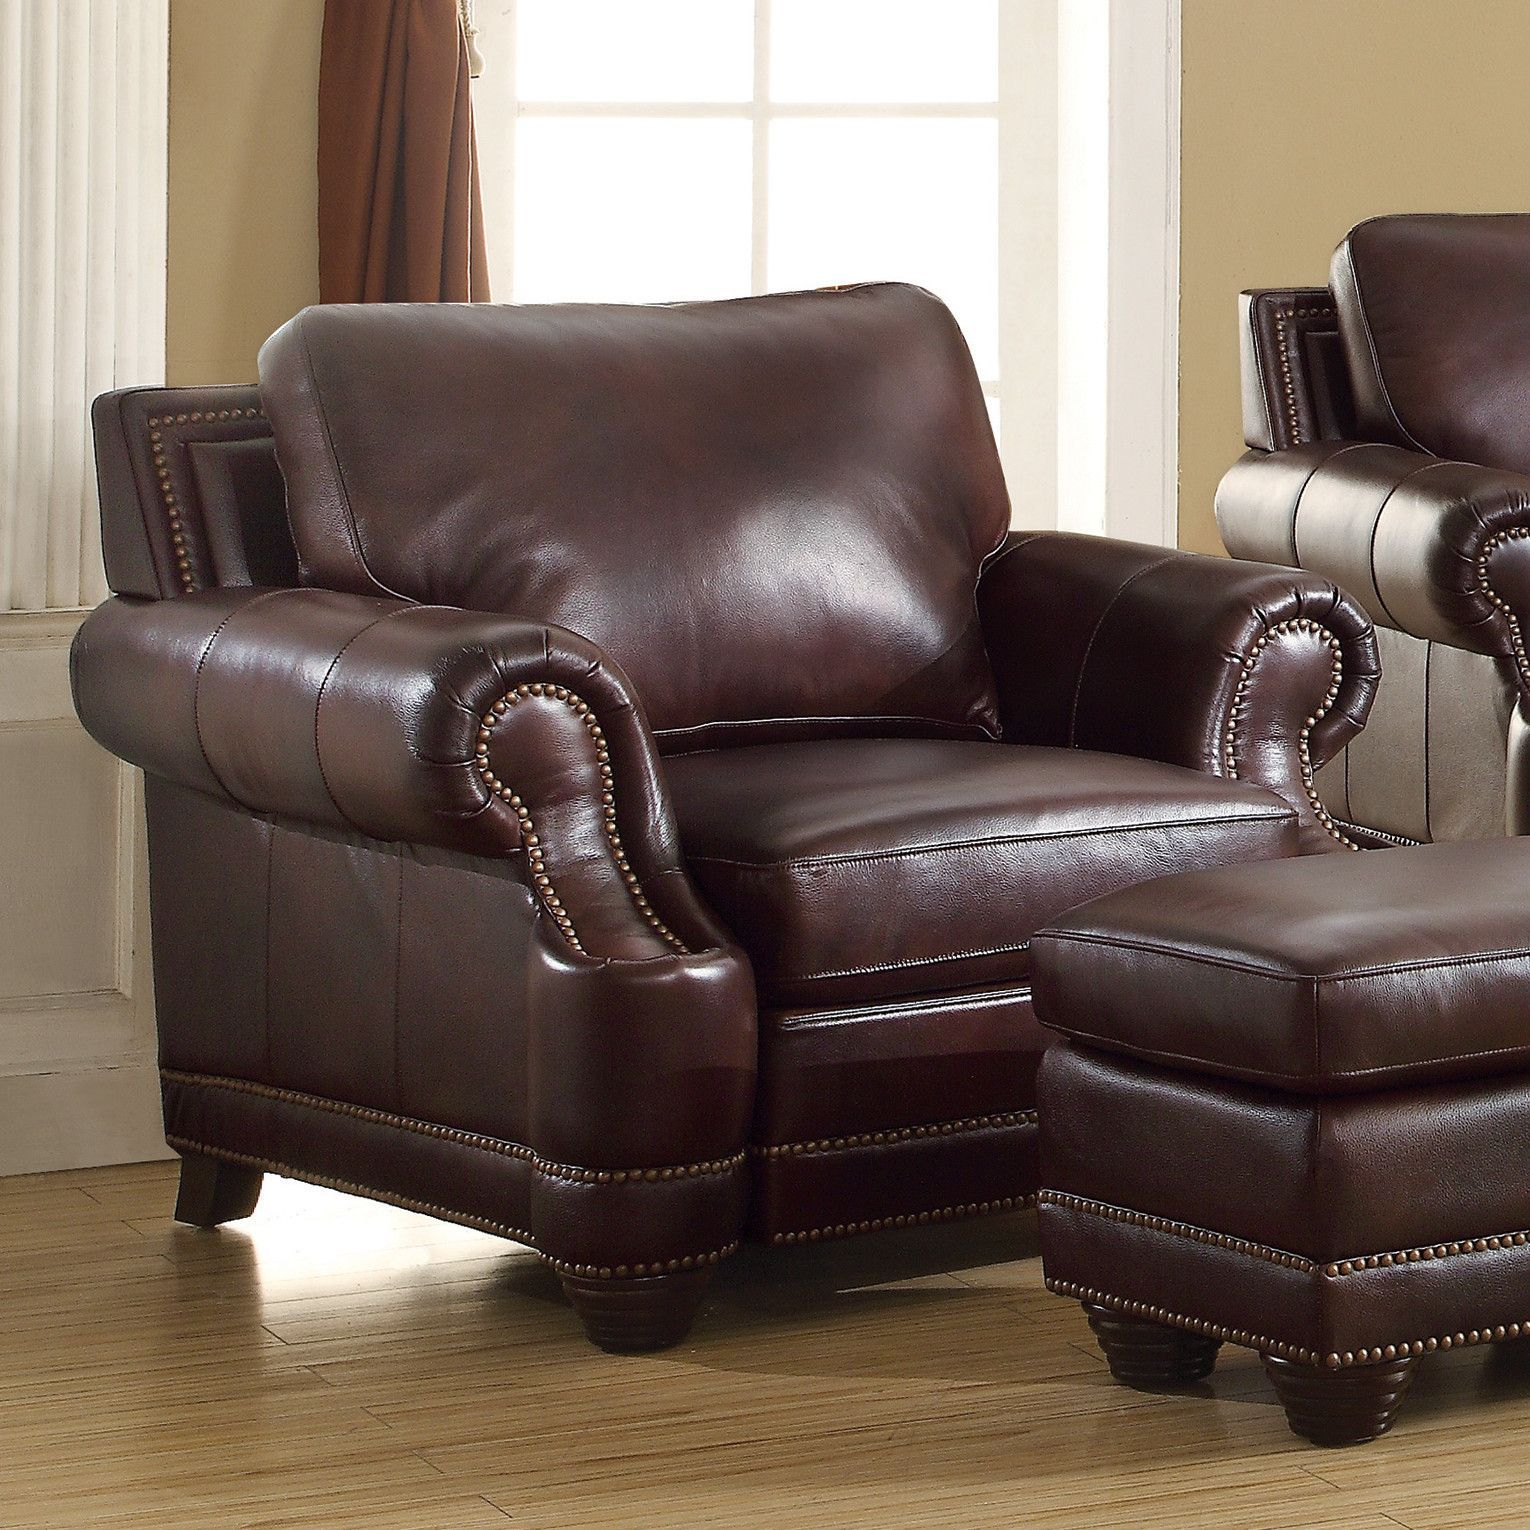 Heywood Armchair and Ottoman Brown leather chairs, Chair